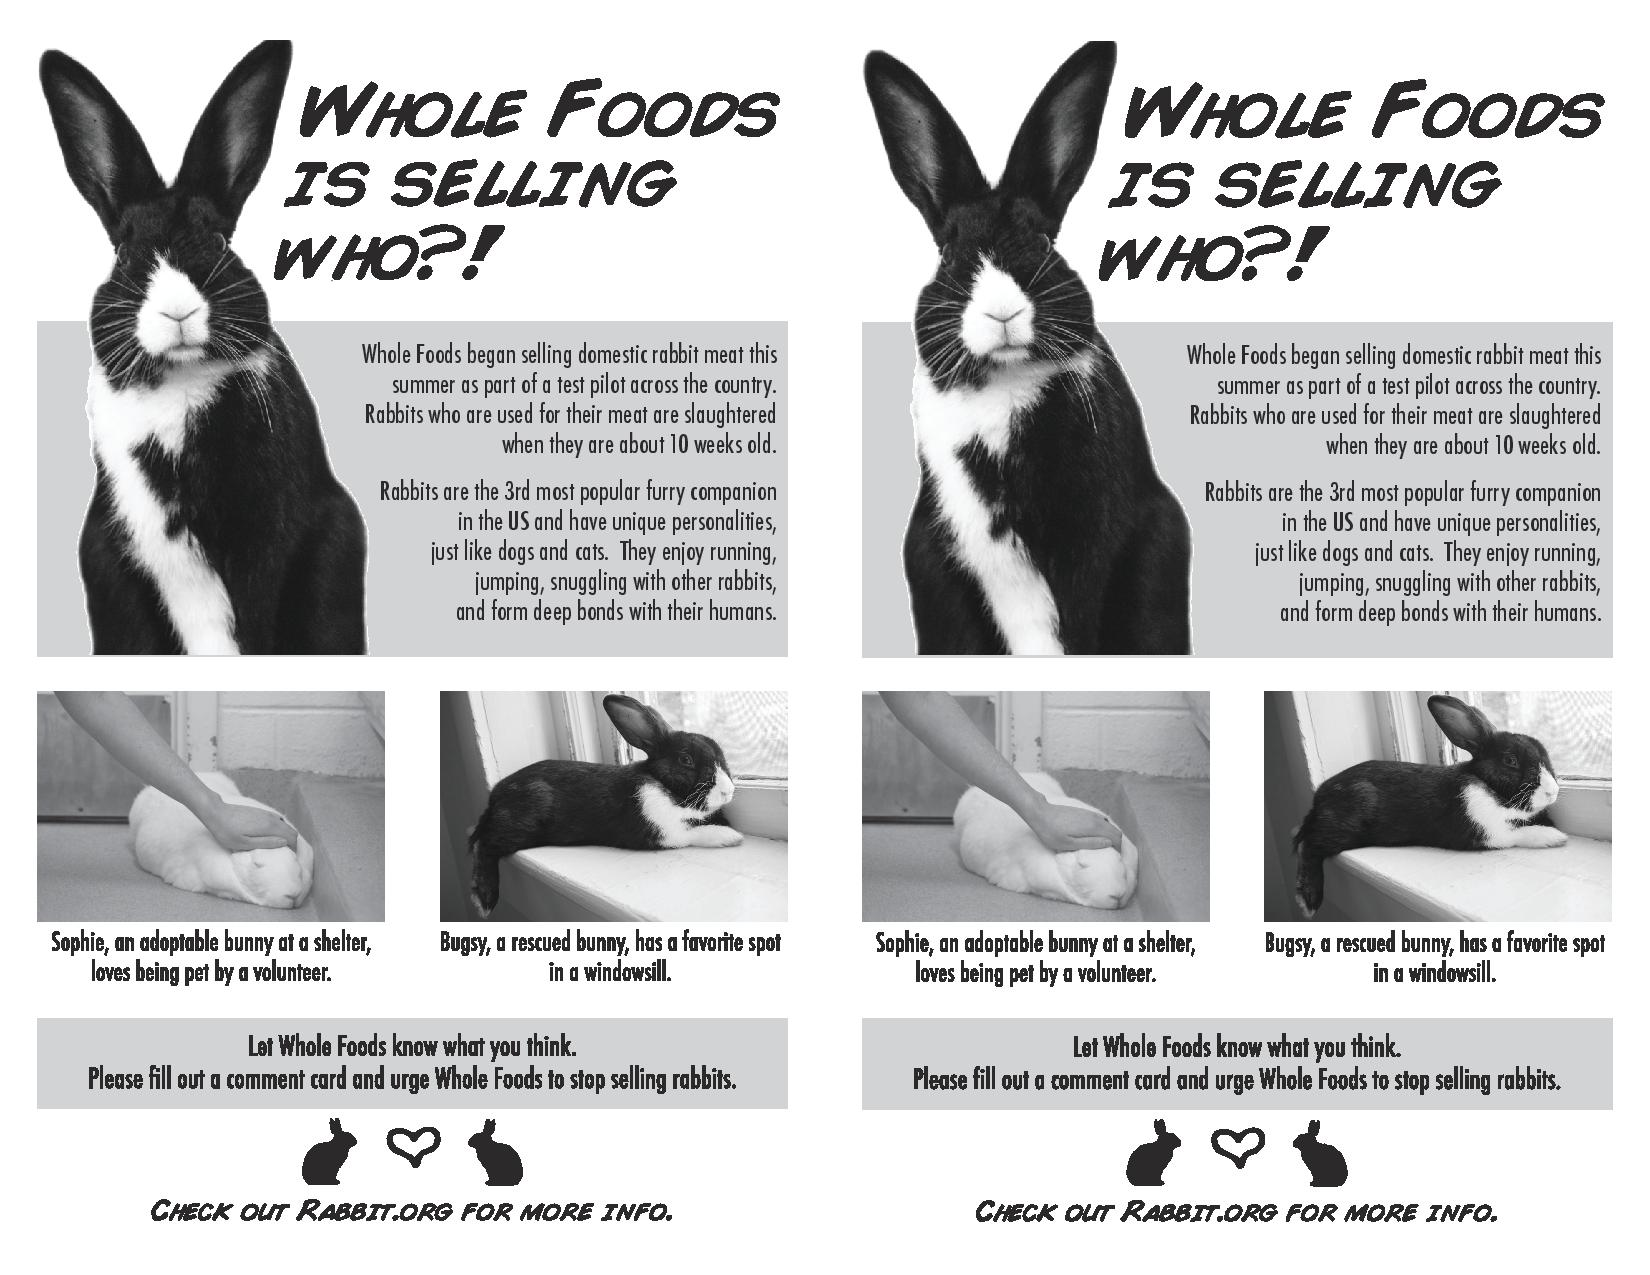 Whole Foods sale of rabbit meat spurs weekend protest plans from